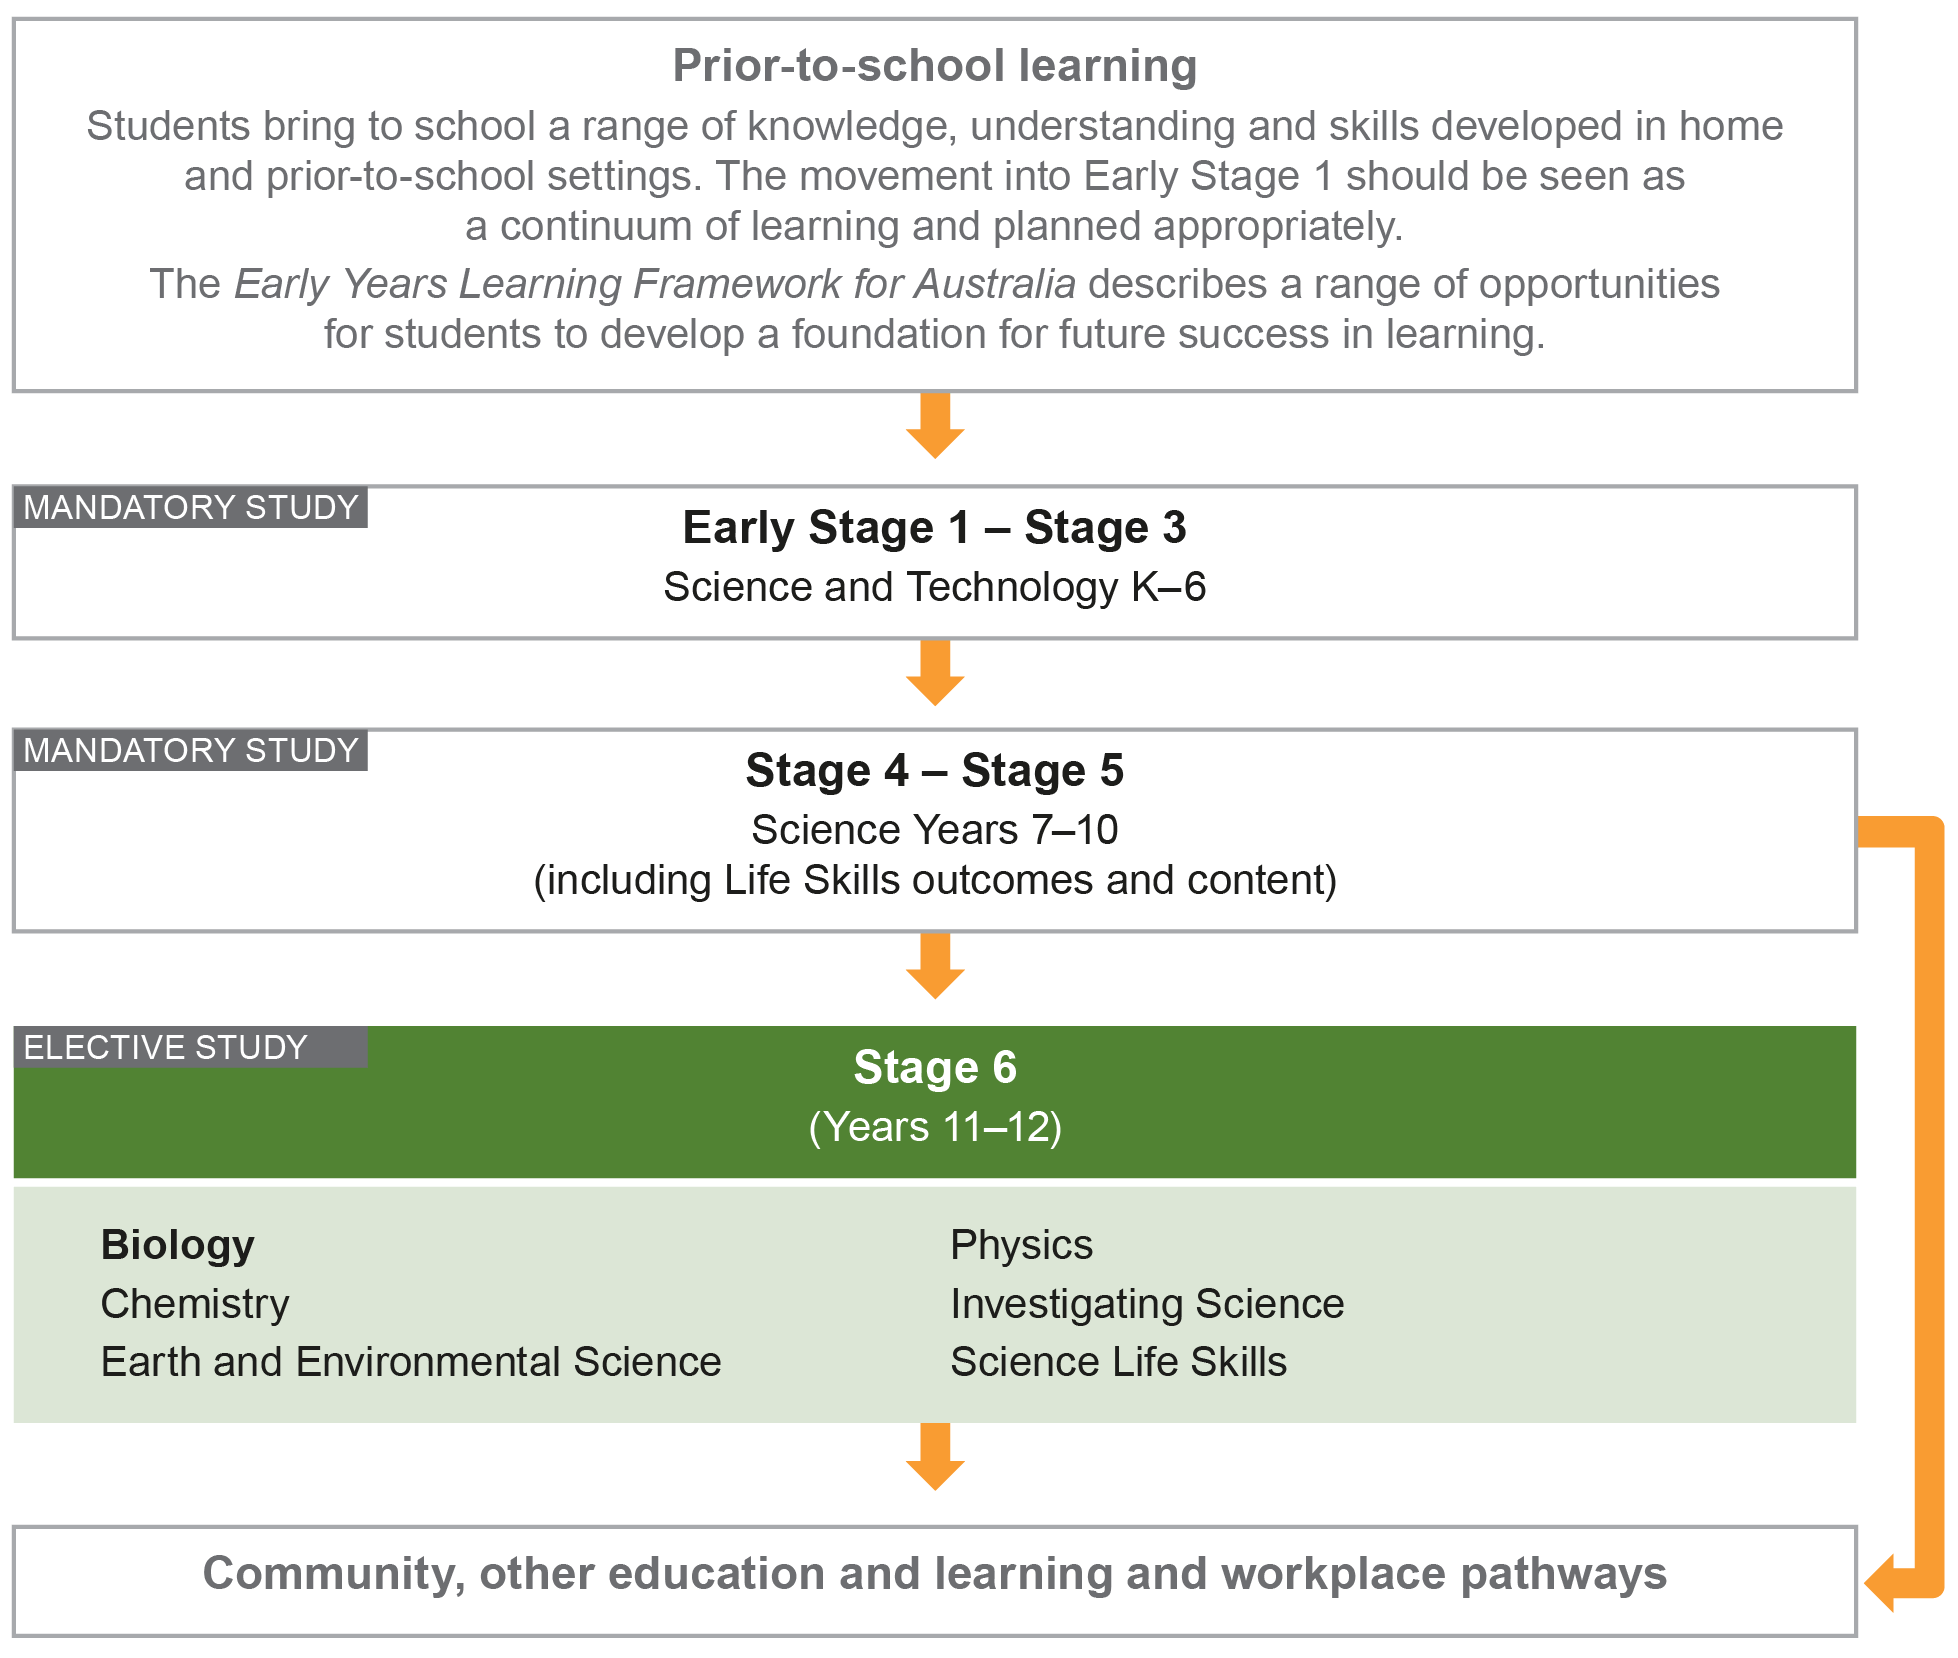 This diagram places Biology Stage 6 in the K–12 curriculum as a whole and shows the flow of learning from prior to starting school, to post school pathways. The diagram begins with prior to school learning, explaining how students bring a range of knowledge, understanding and skills they develop at home to the school setting in Early Stage 1. Step 2 shows the Early Stage 1 – Stage 3 mandatory Science and Technology K–6 course. Step 3 shows the Stage 4 – Stage 5 mandatory Science Years 7–10 course. Step 4 shows the list of Stage 6 elective Science courses, including Biology, Chemistry, Earth and Environmental Science, Physics, Investigating Science and Science Life Skills. The final step shows community, other education and learning and workplace pathways.